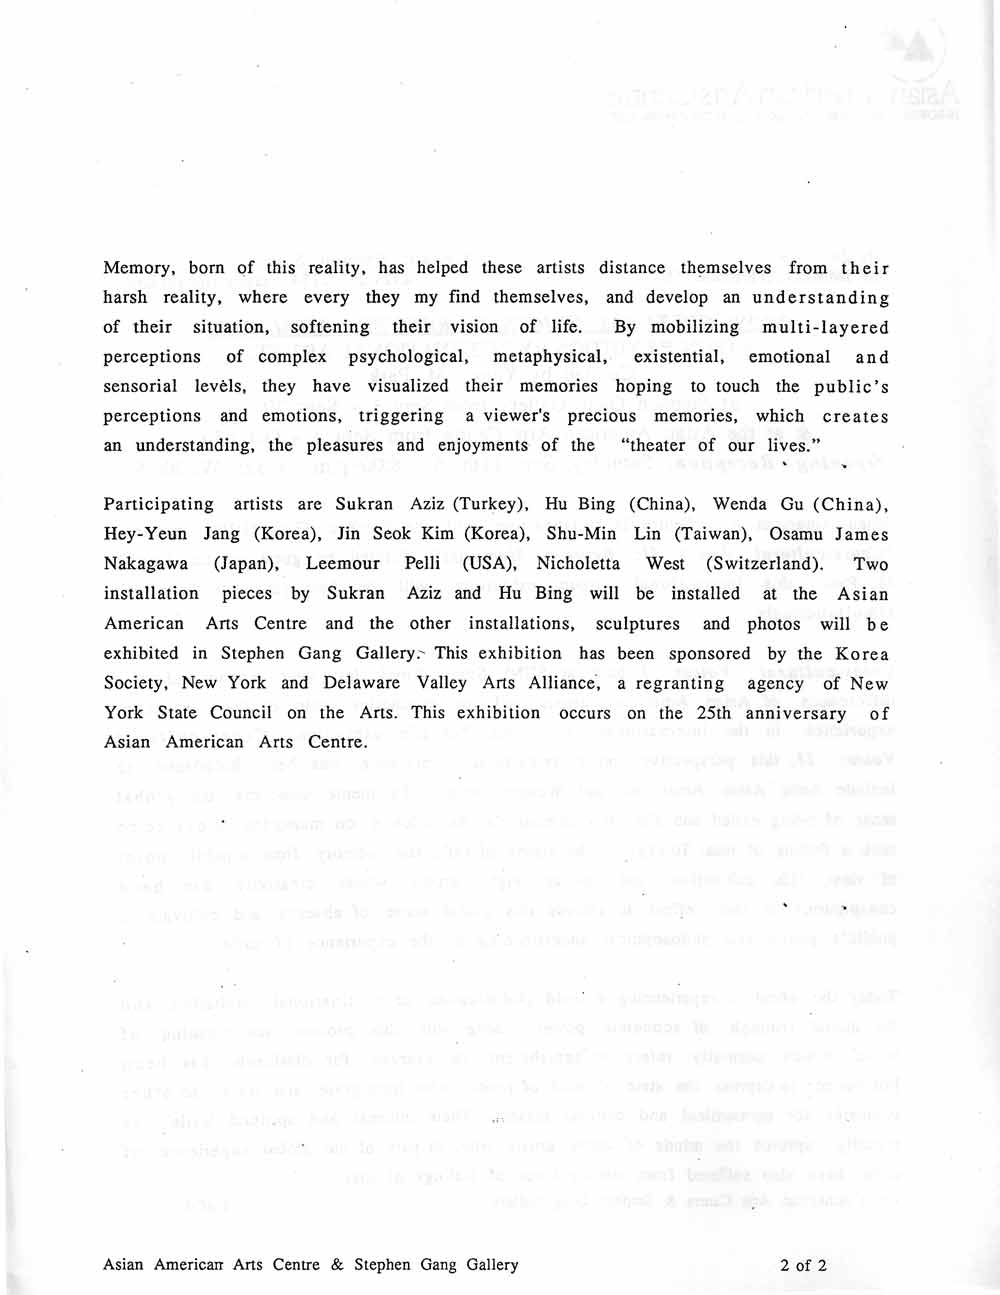 Cross-Cultural Voices II, press release, pg 2